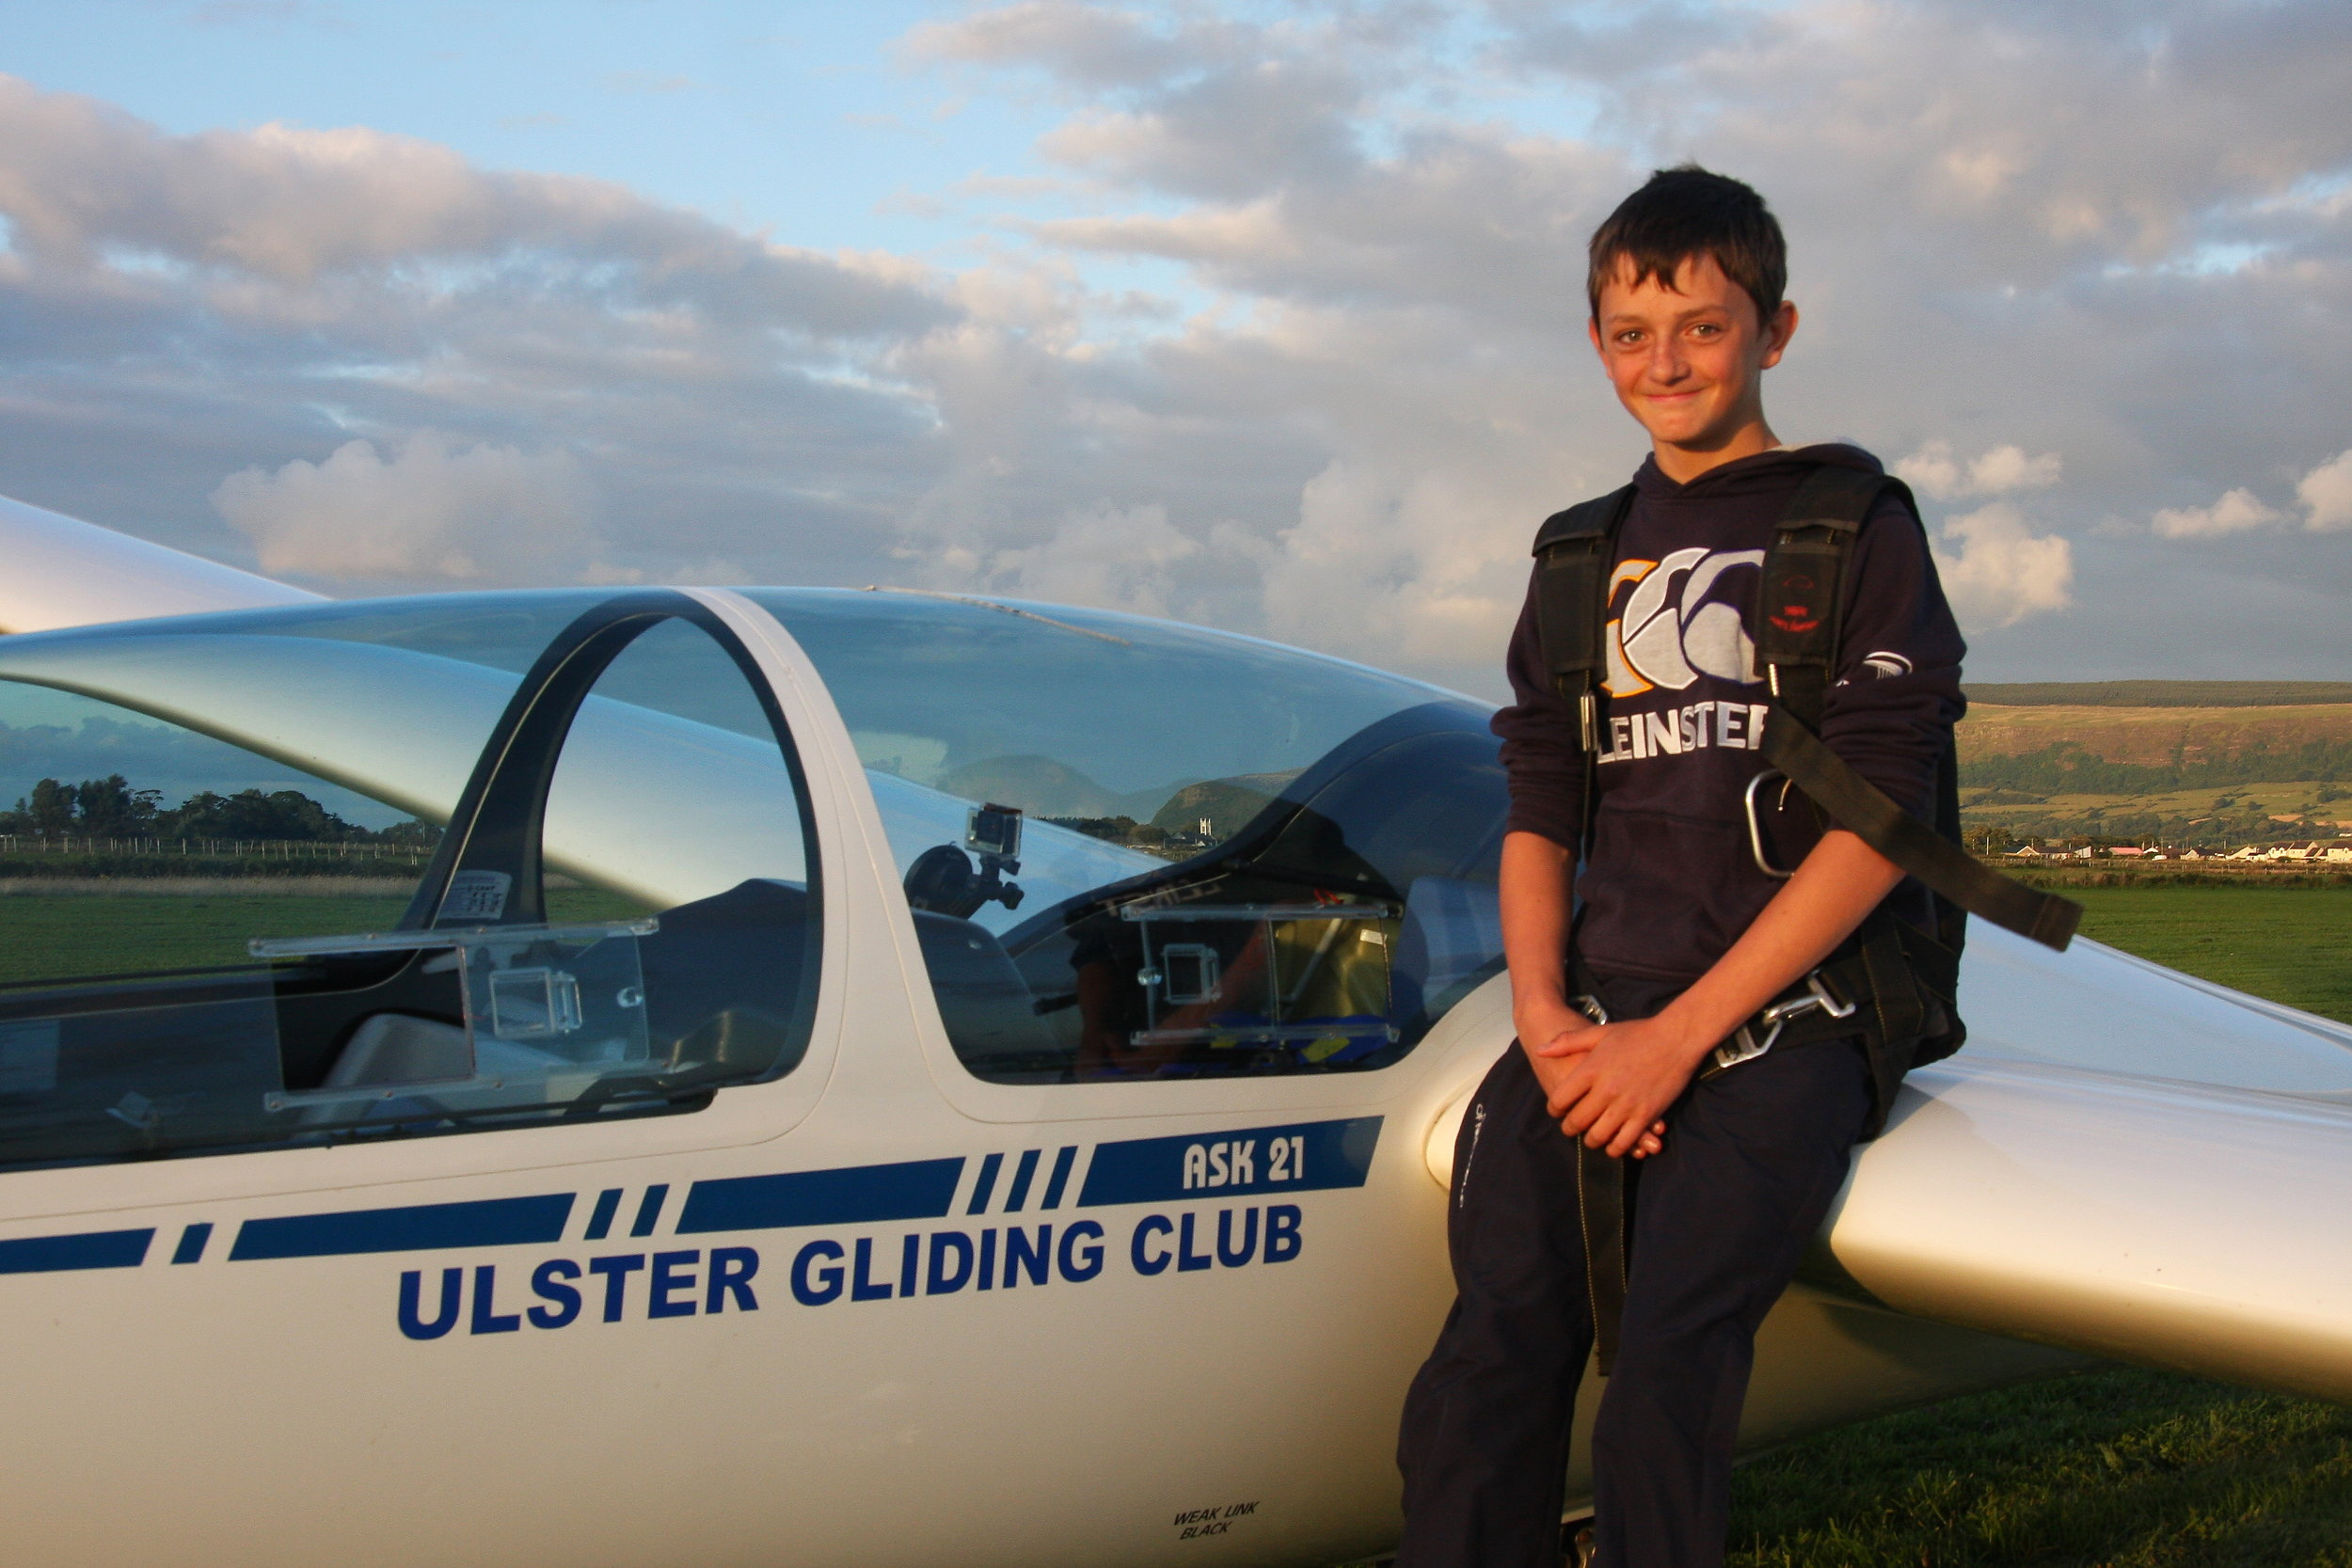 Harry Houlihan aged 14 yrs after achieving his first solo flight.